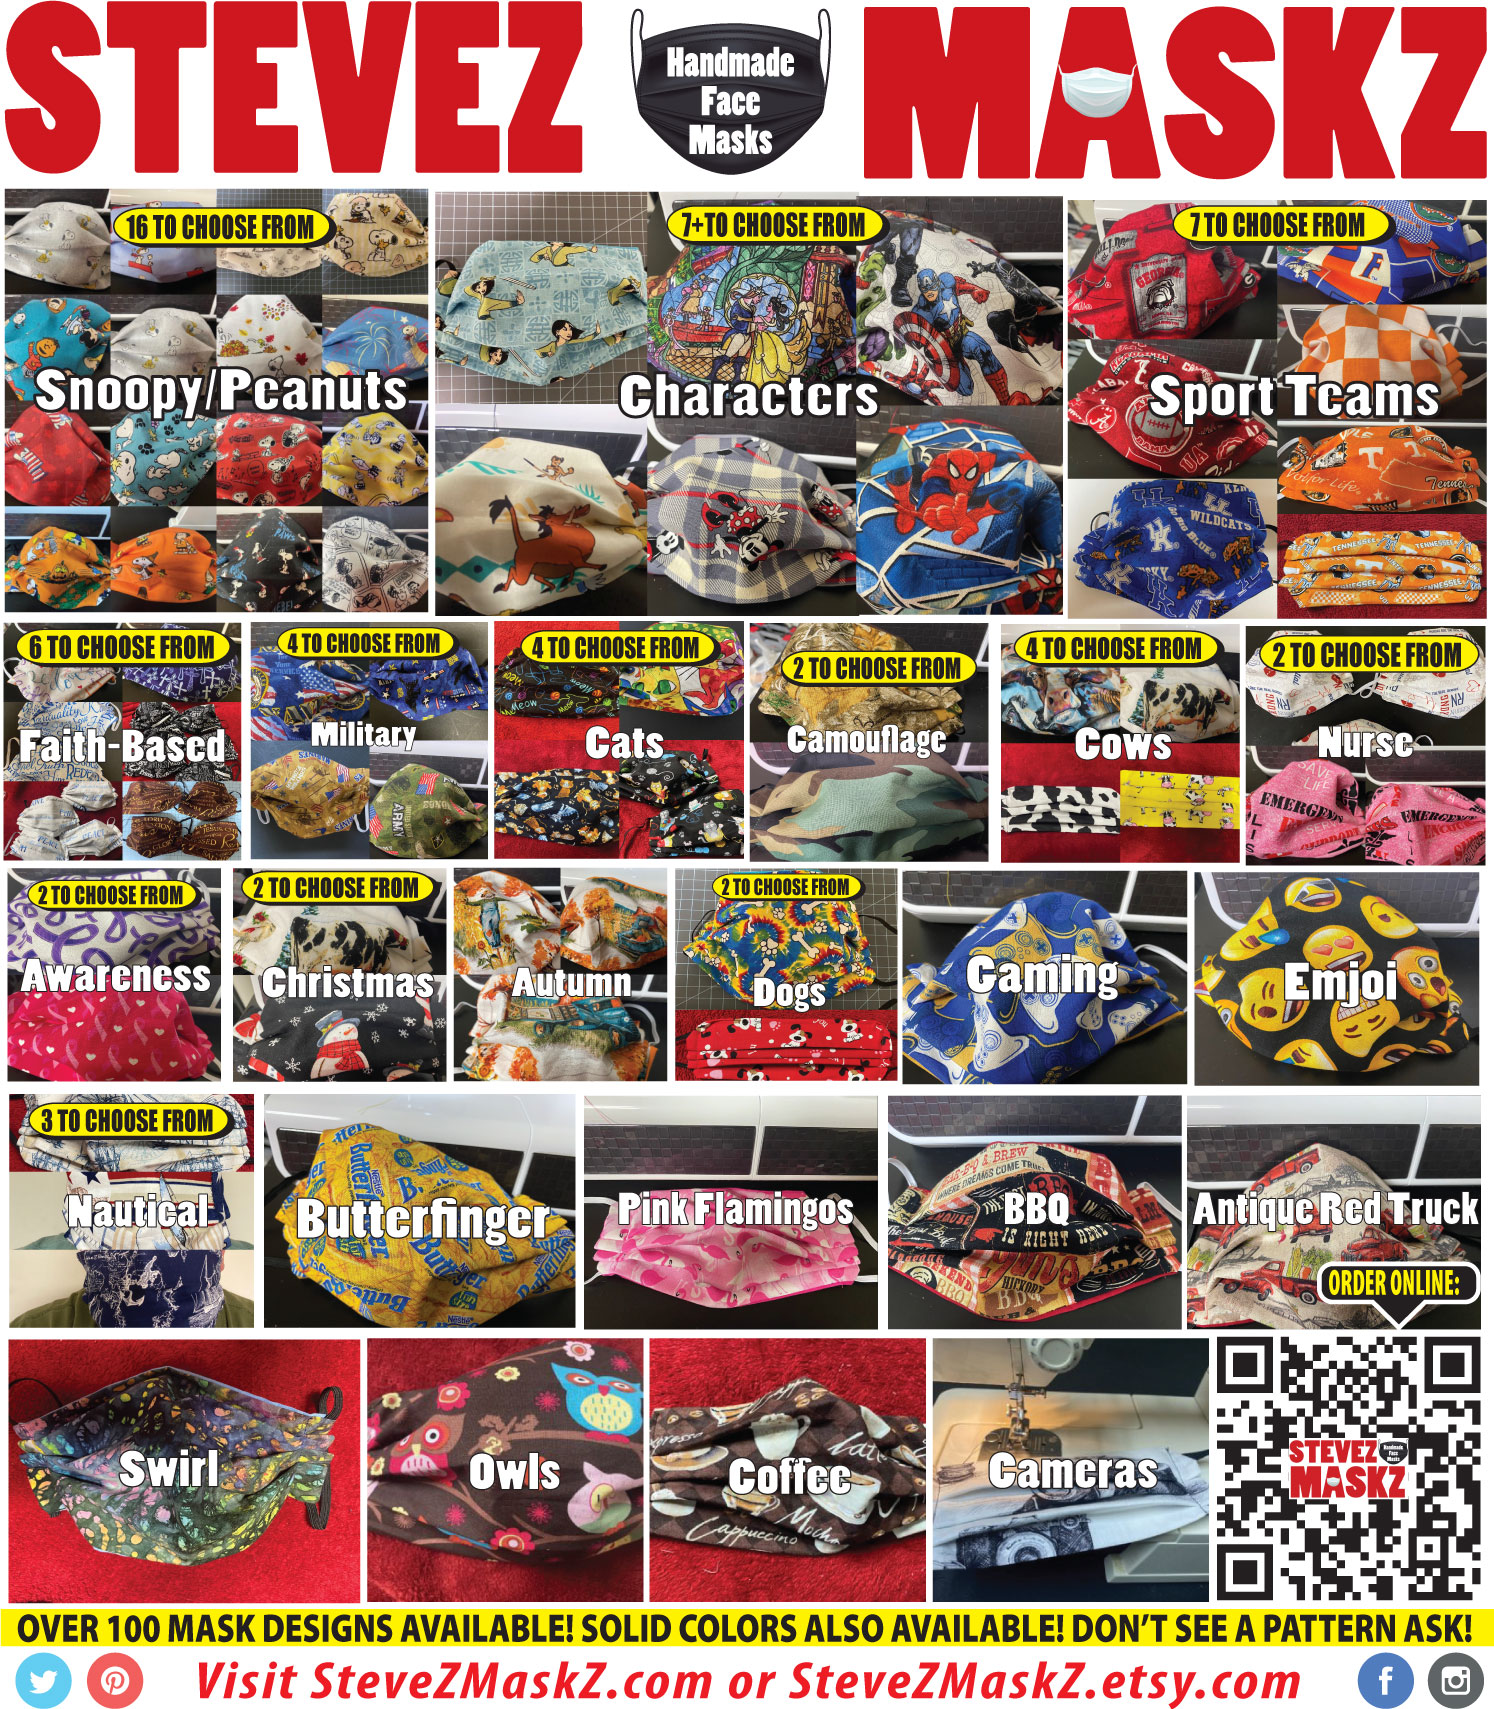 SteveZ MaskZ - Handmade Face Masks For Sale